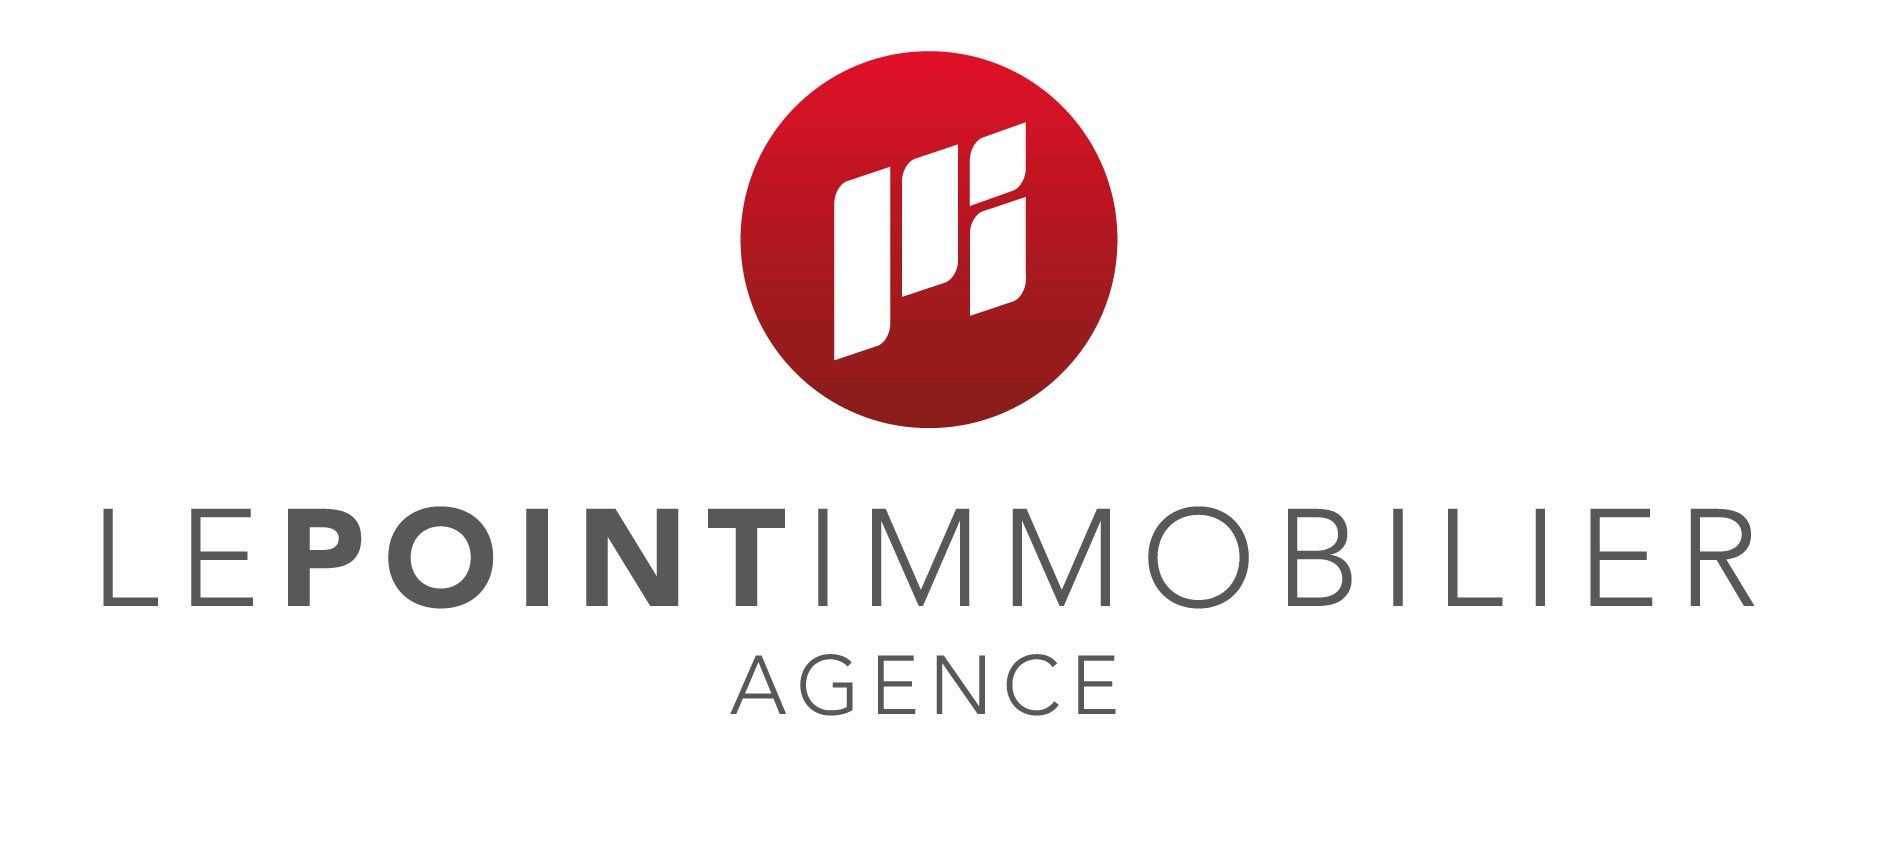 Le point immobilier agence immobili re brive la gaillarde for Les agence immobiliere